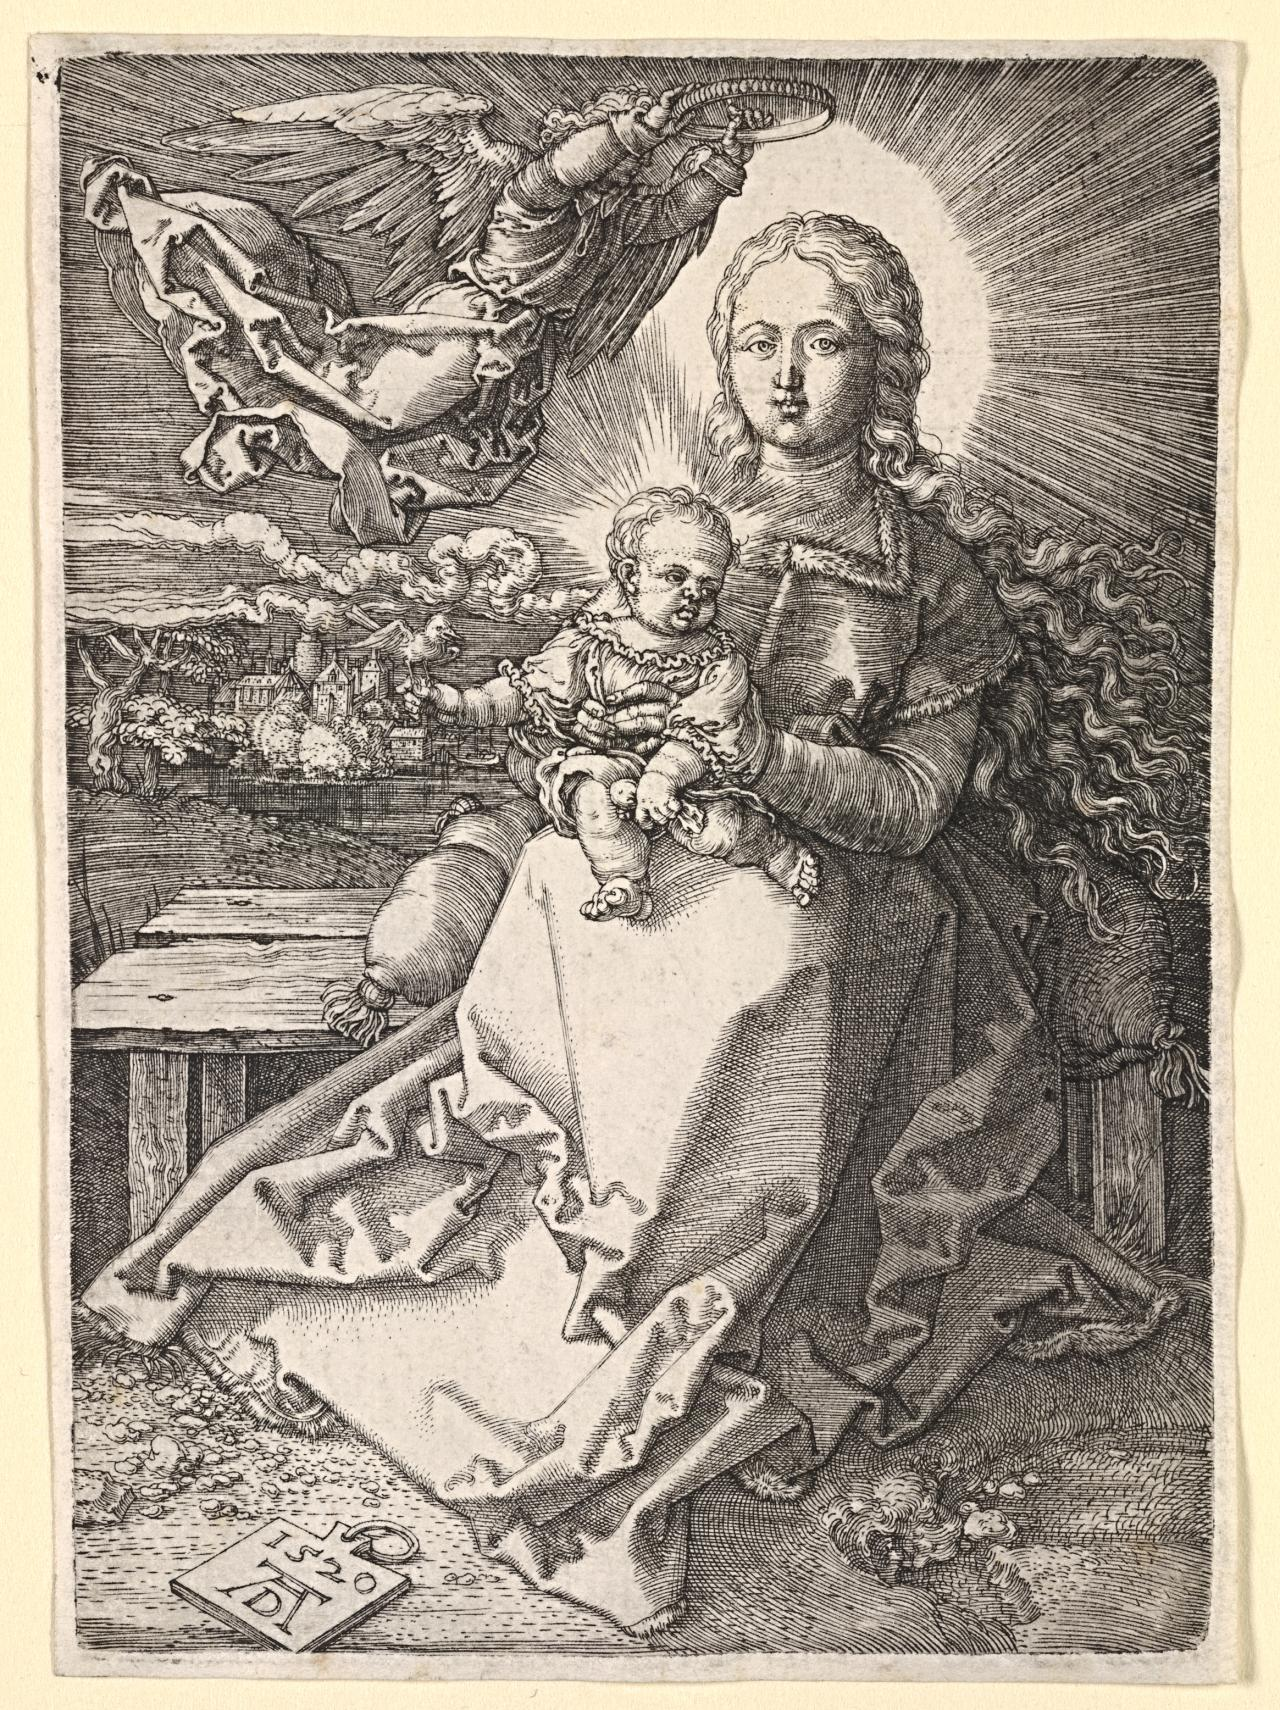 Dürers last three engravings of the virgin and child were completed in 1519 and 1520 and together constitute his definitive statement on the theme